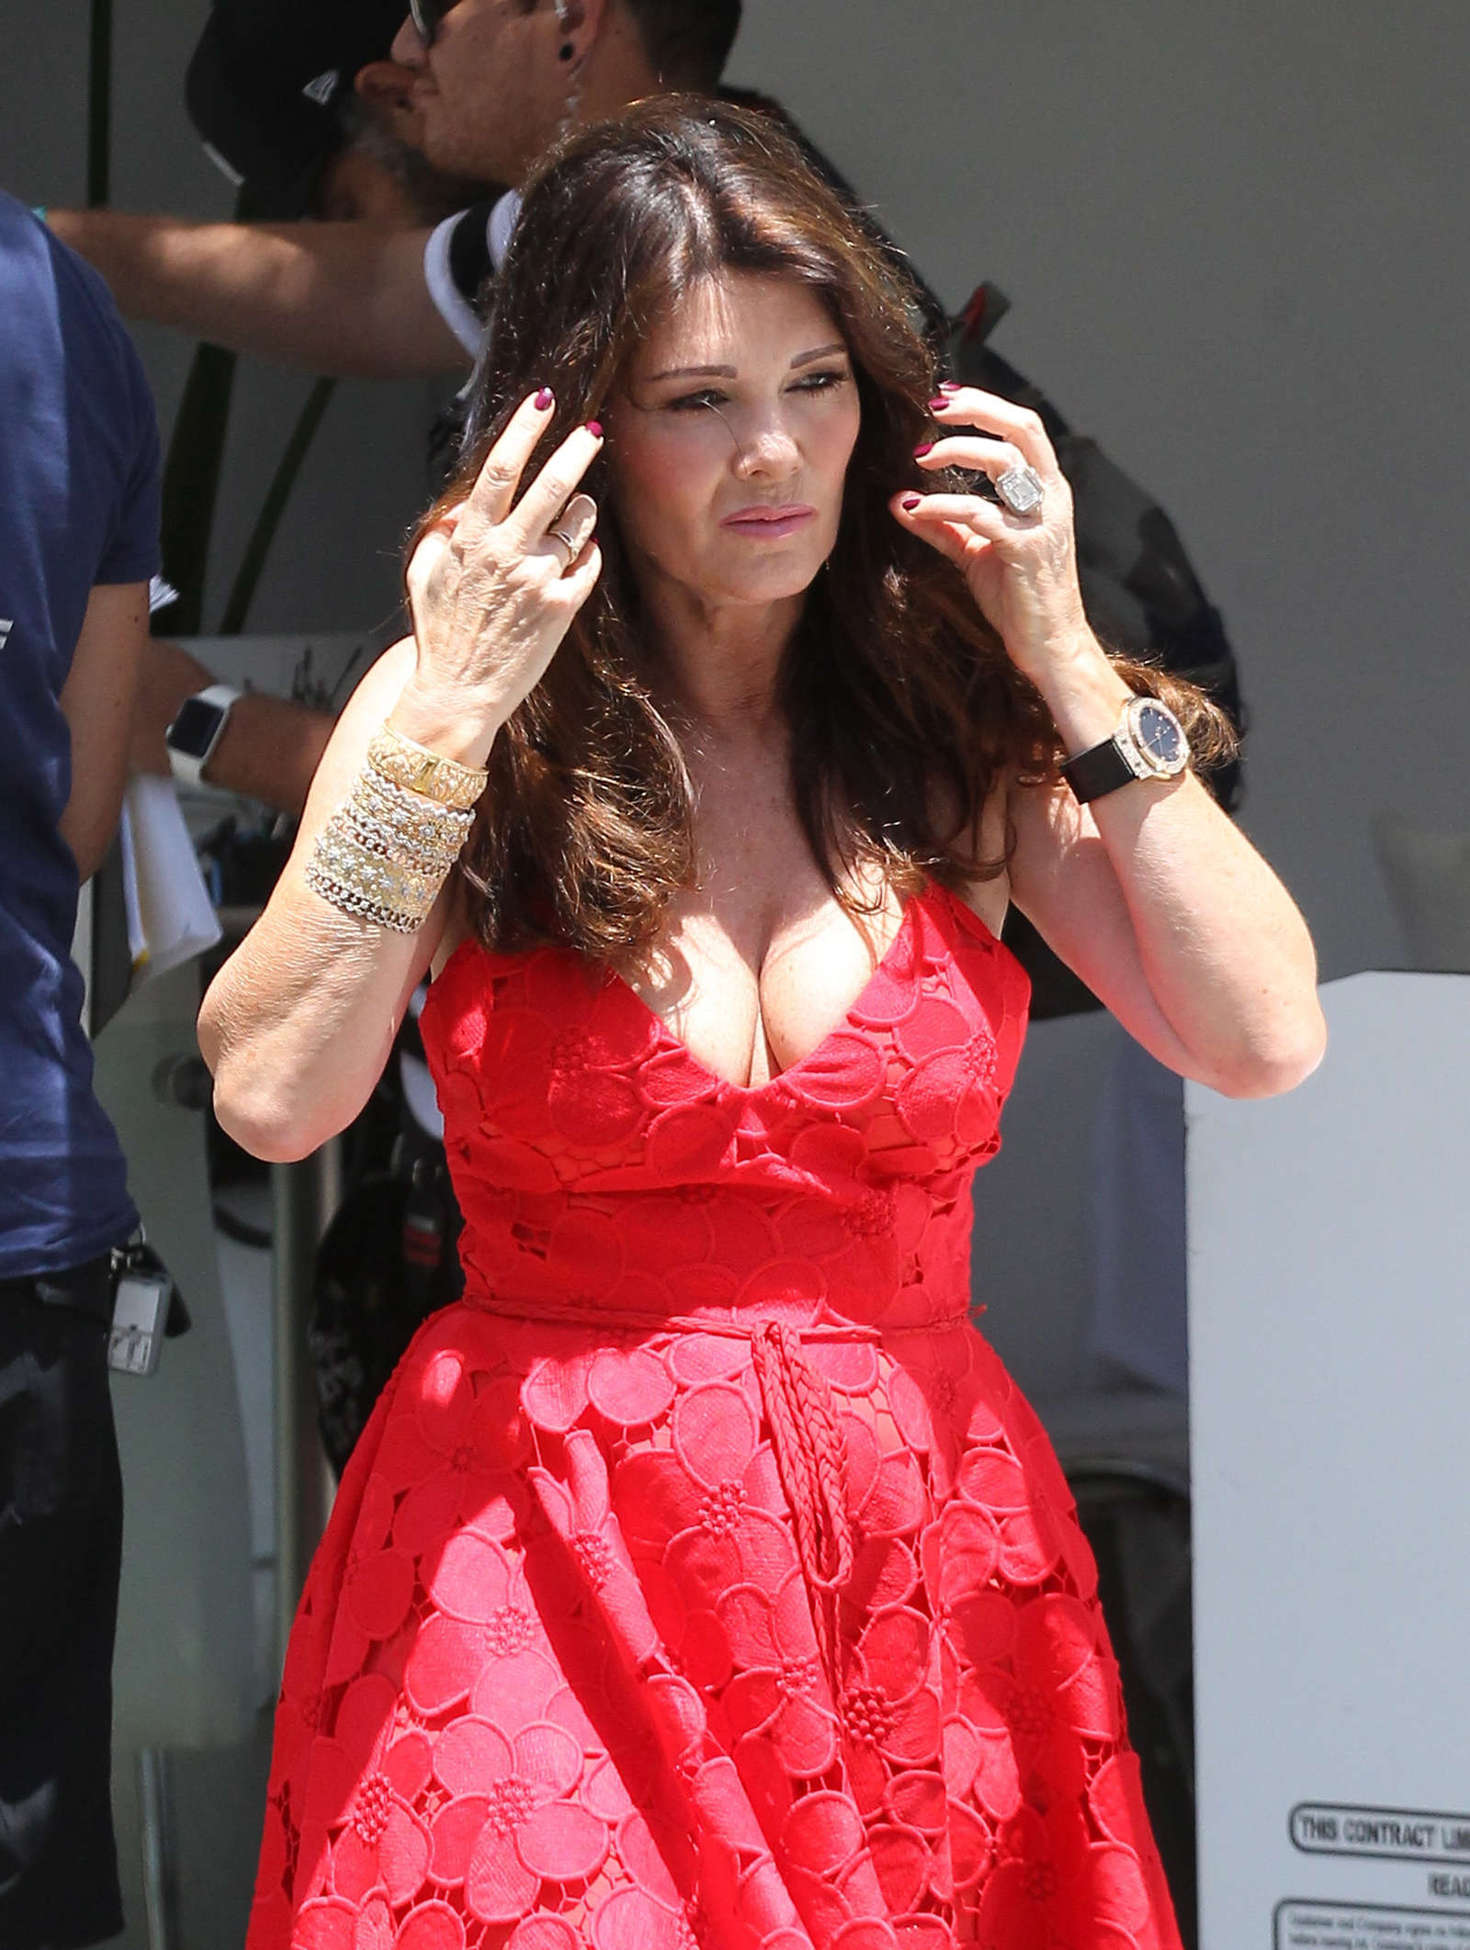 Lisa Vanderpump Filming Real Housewives Of Beverly